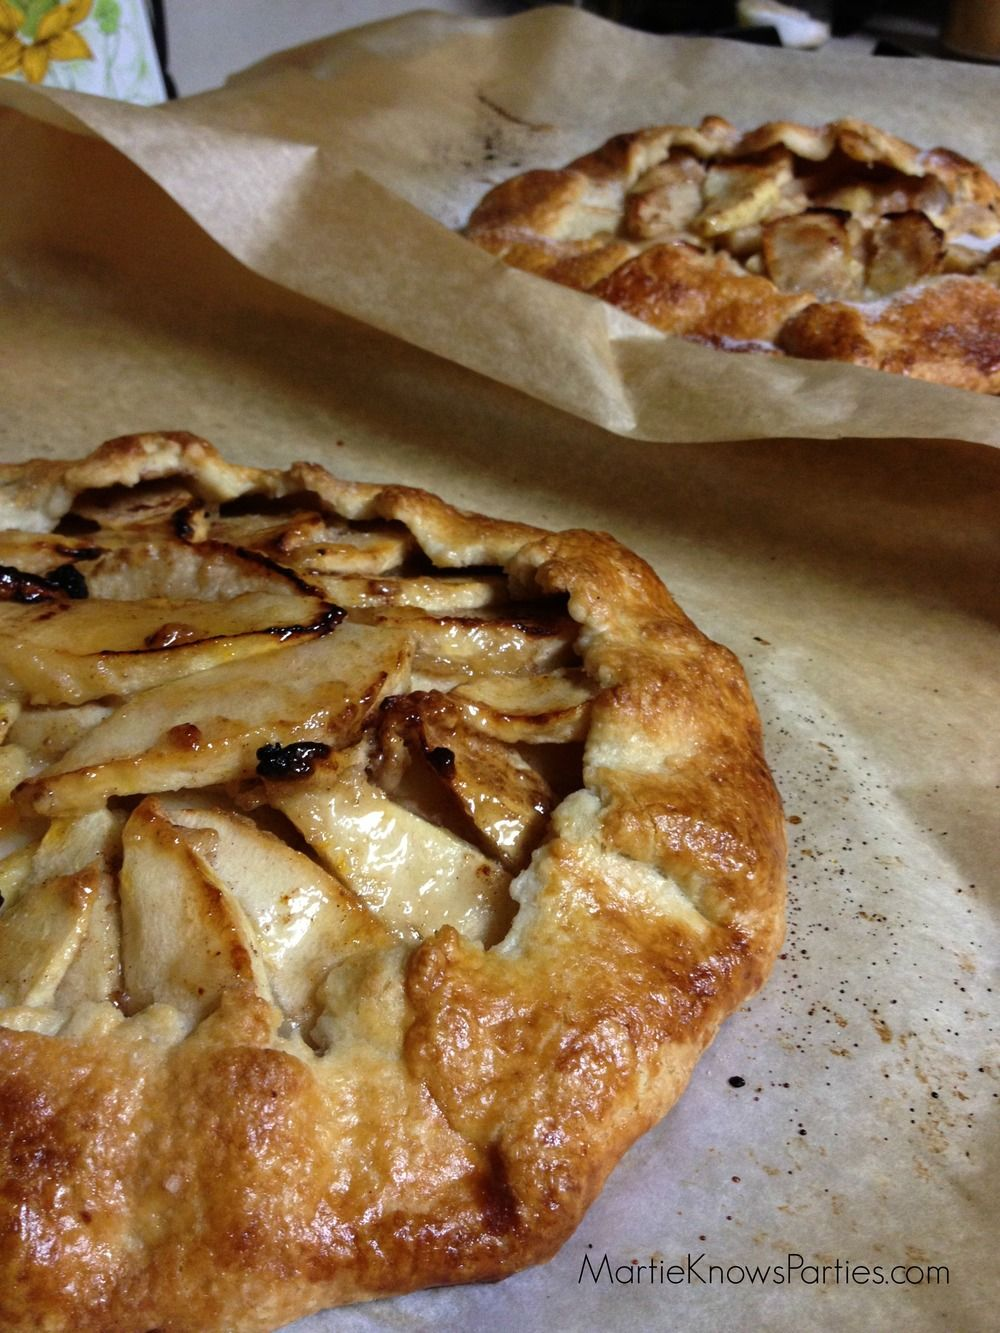 RECIPE: RUSTIC APPLE PIE WITH EASY TO MAKE PIE CRU